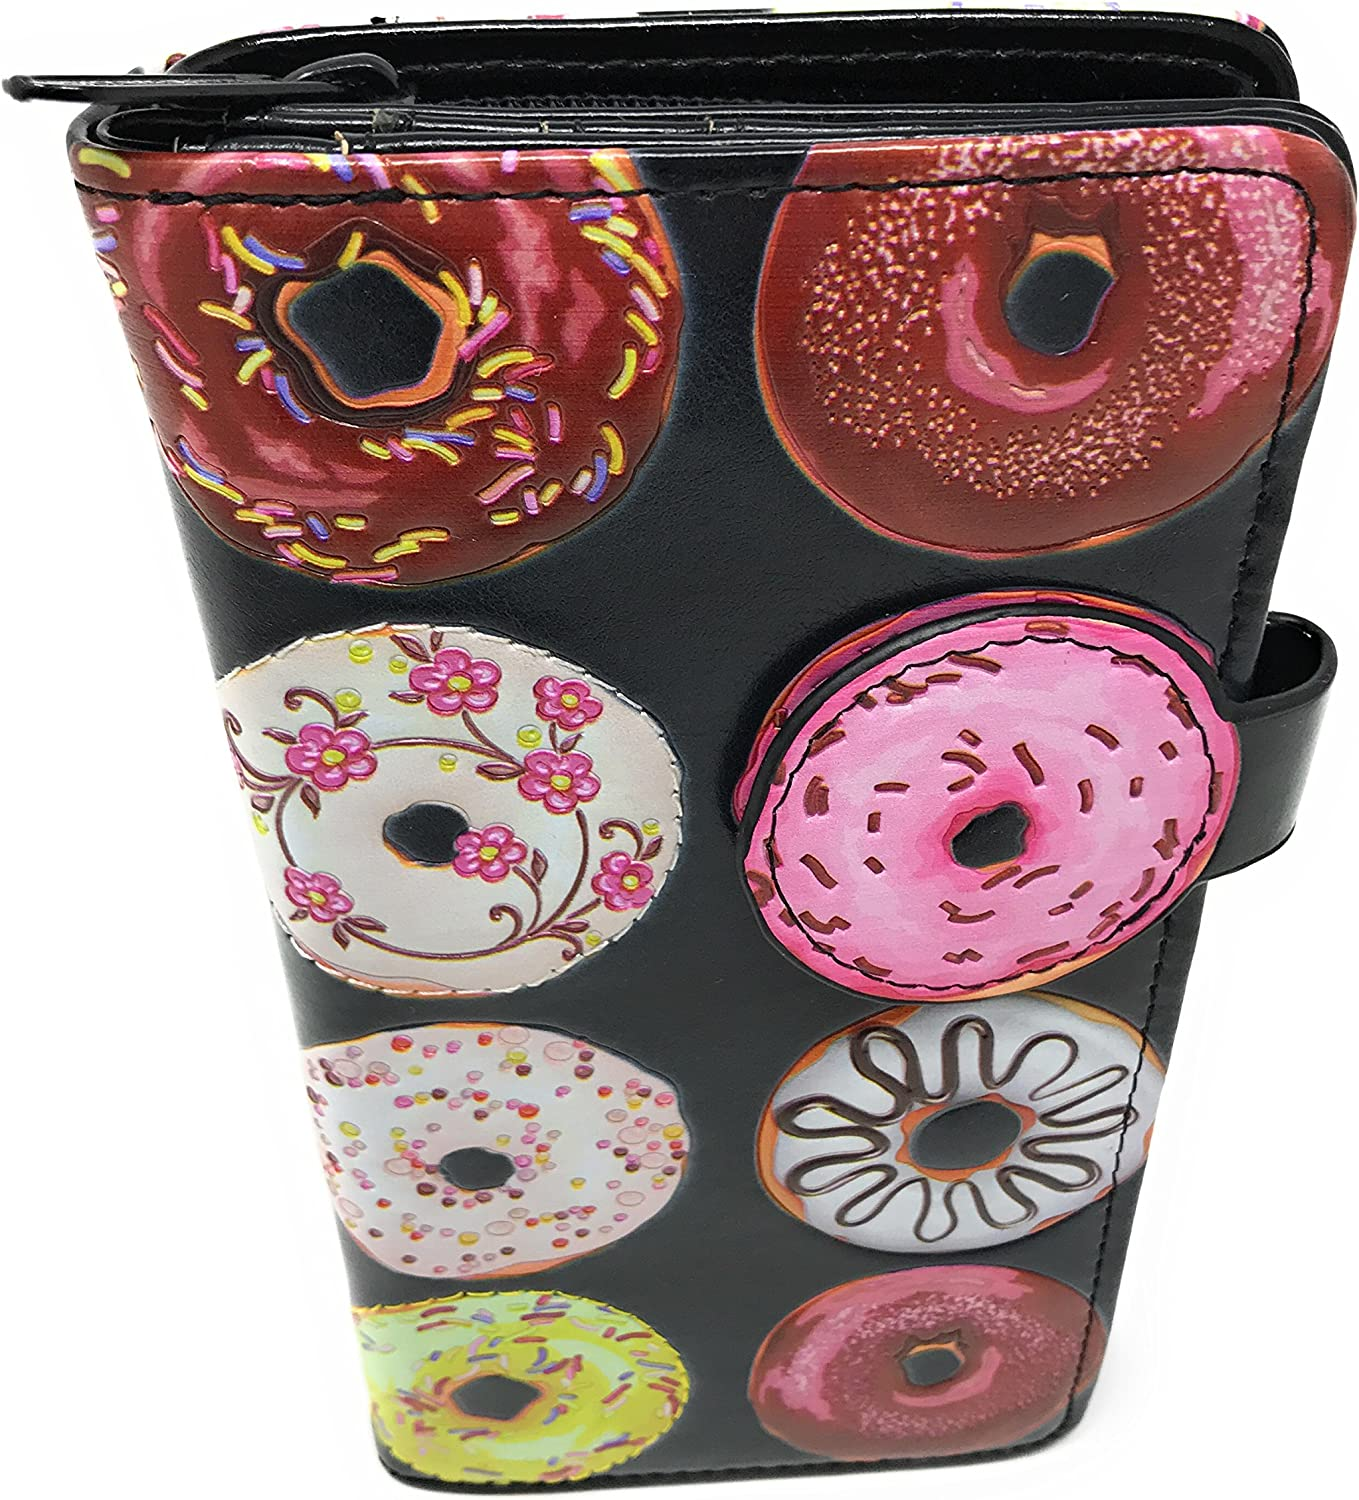 Women's Donut Wallet Black